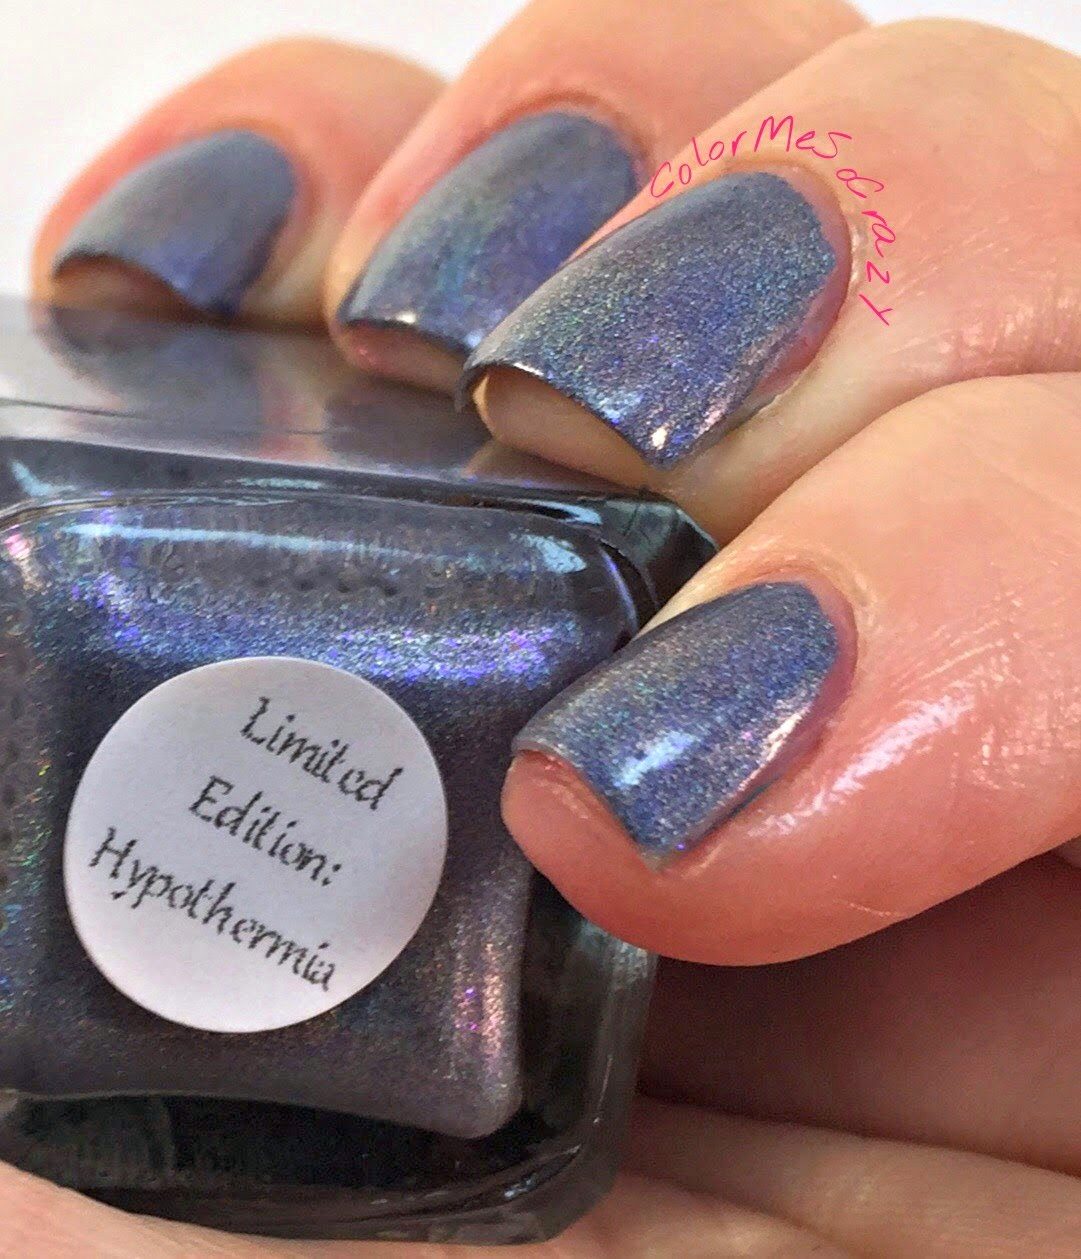 begl, blue eyed girl lacquer, nail polish, purple polish, spark in the dark, purple holographic, holographic indie polish, hypothermia, holo polish